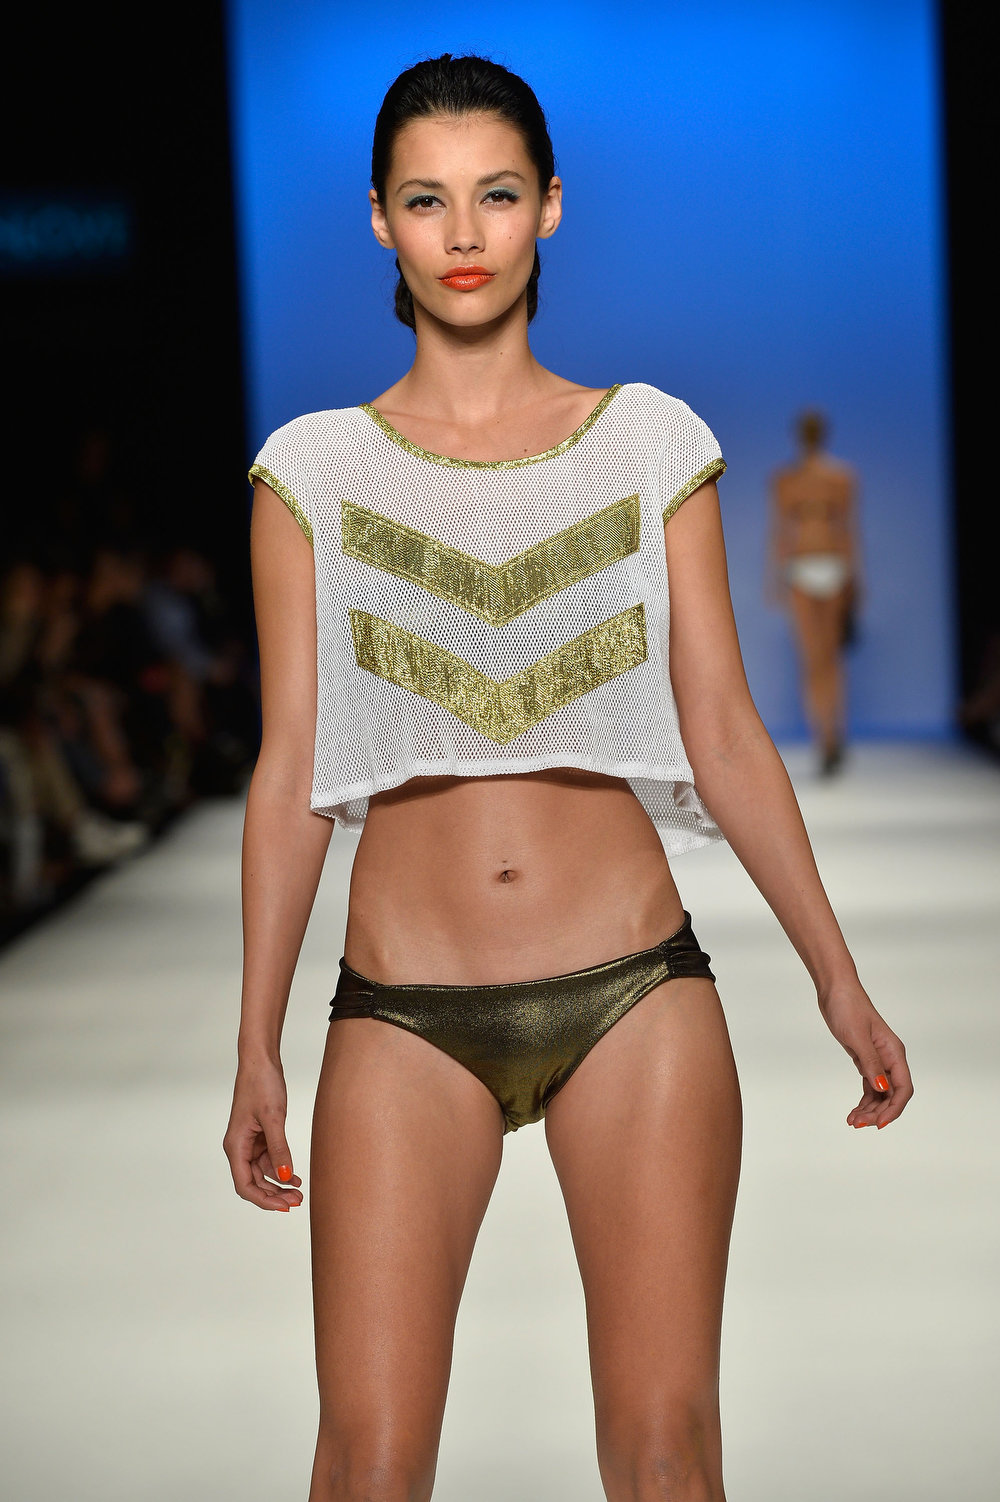 . A model showcases designs by maidenlove on the runway at the Group Swim show during Mercedes-Benz Fashion Week Australia Spring/Summer 2013/14 at Carriageworks on April 8, 2013 in Sydney, Australia.  (Photo by Stefan Gosatti/Getty Images)